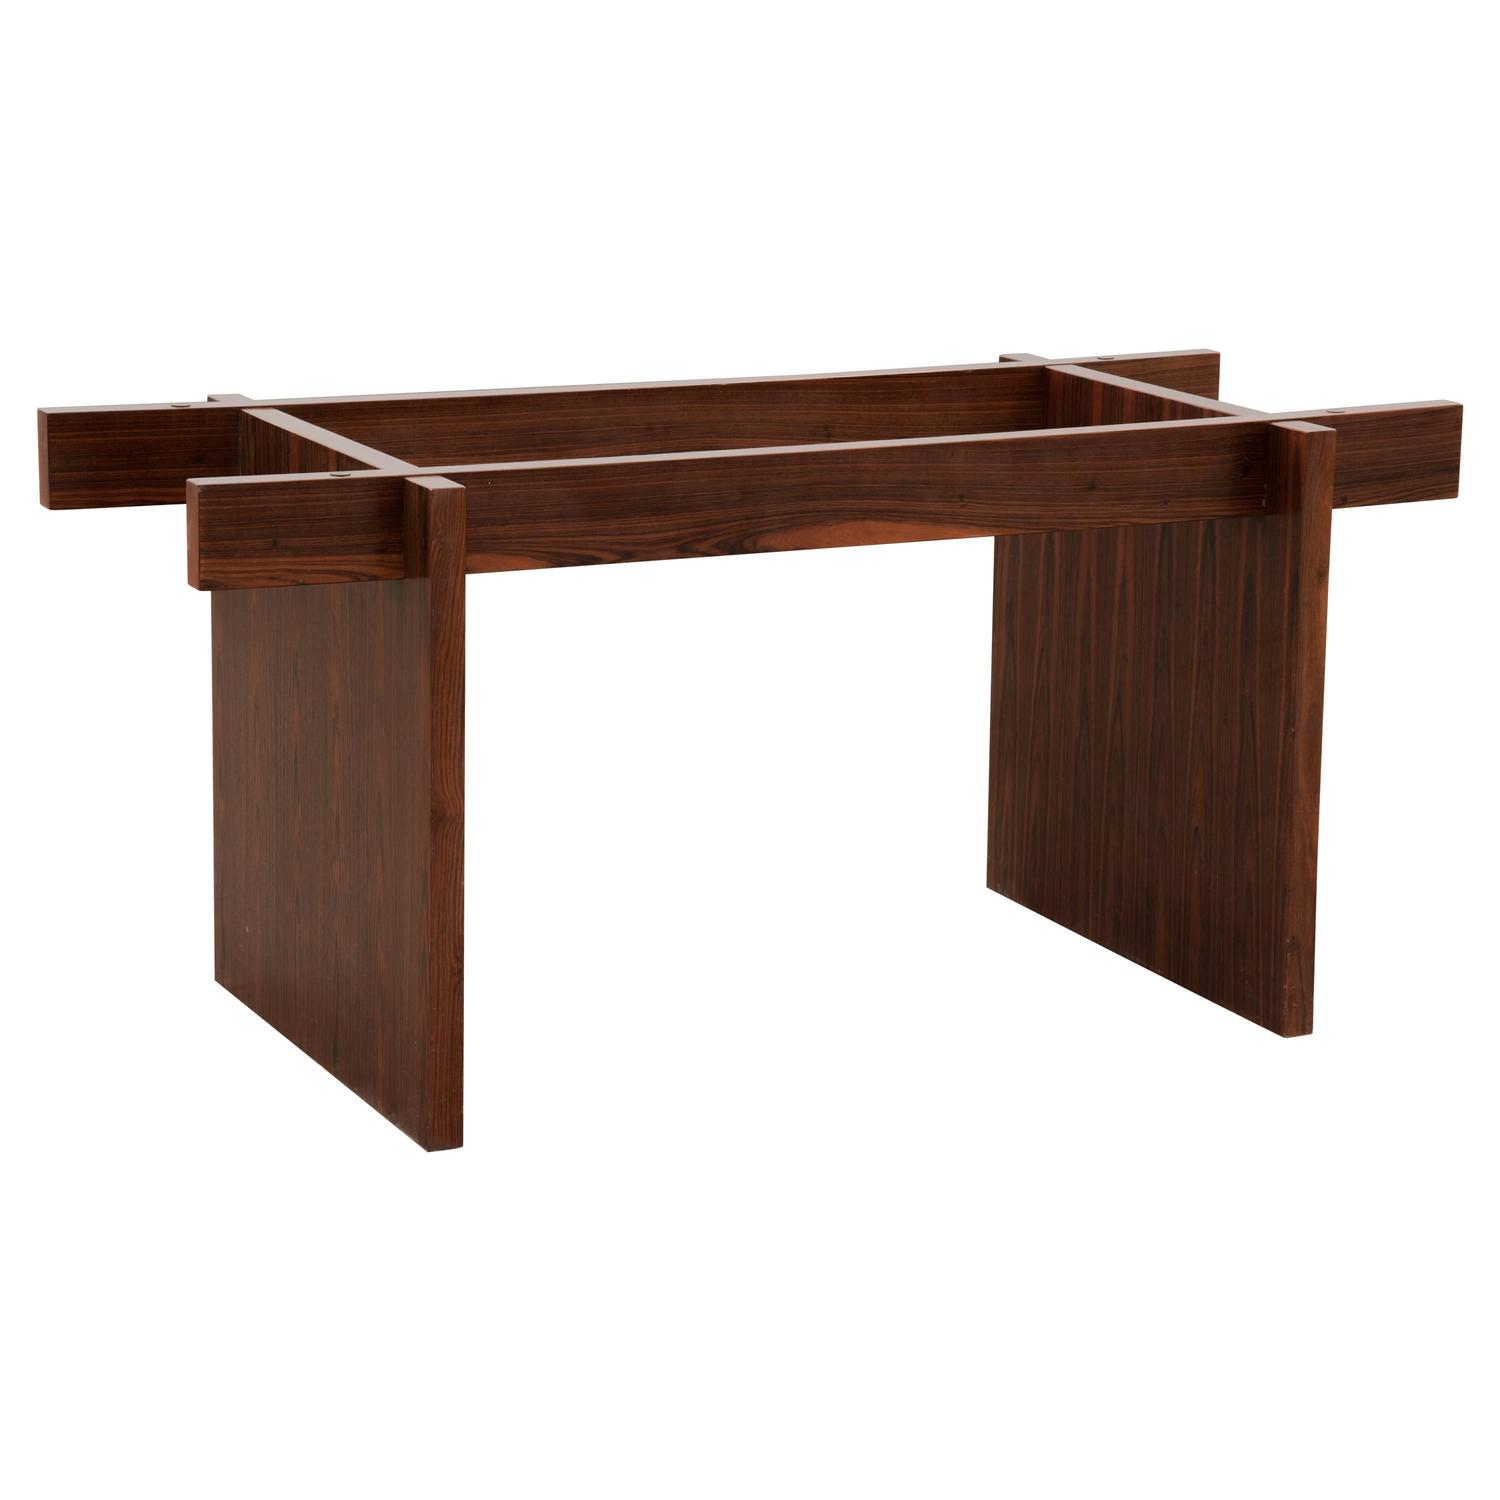 Danish Modern Rosewood Veneer Dining Table Base at 1stdibs : 4847323z from www.1stdibs.com size 1500 x 1500 jpeg 60kB